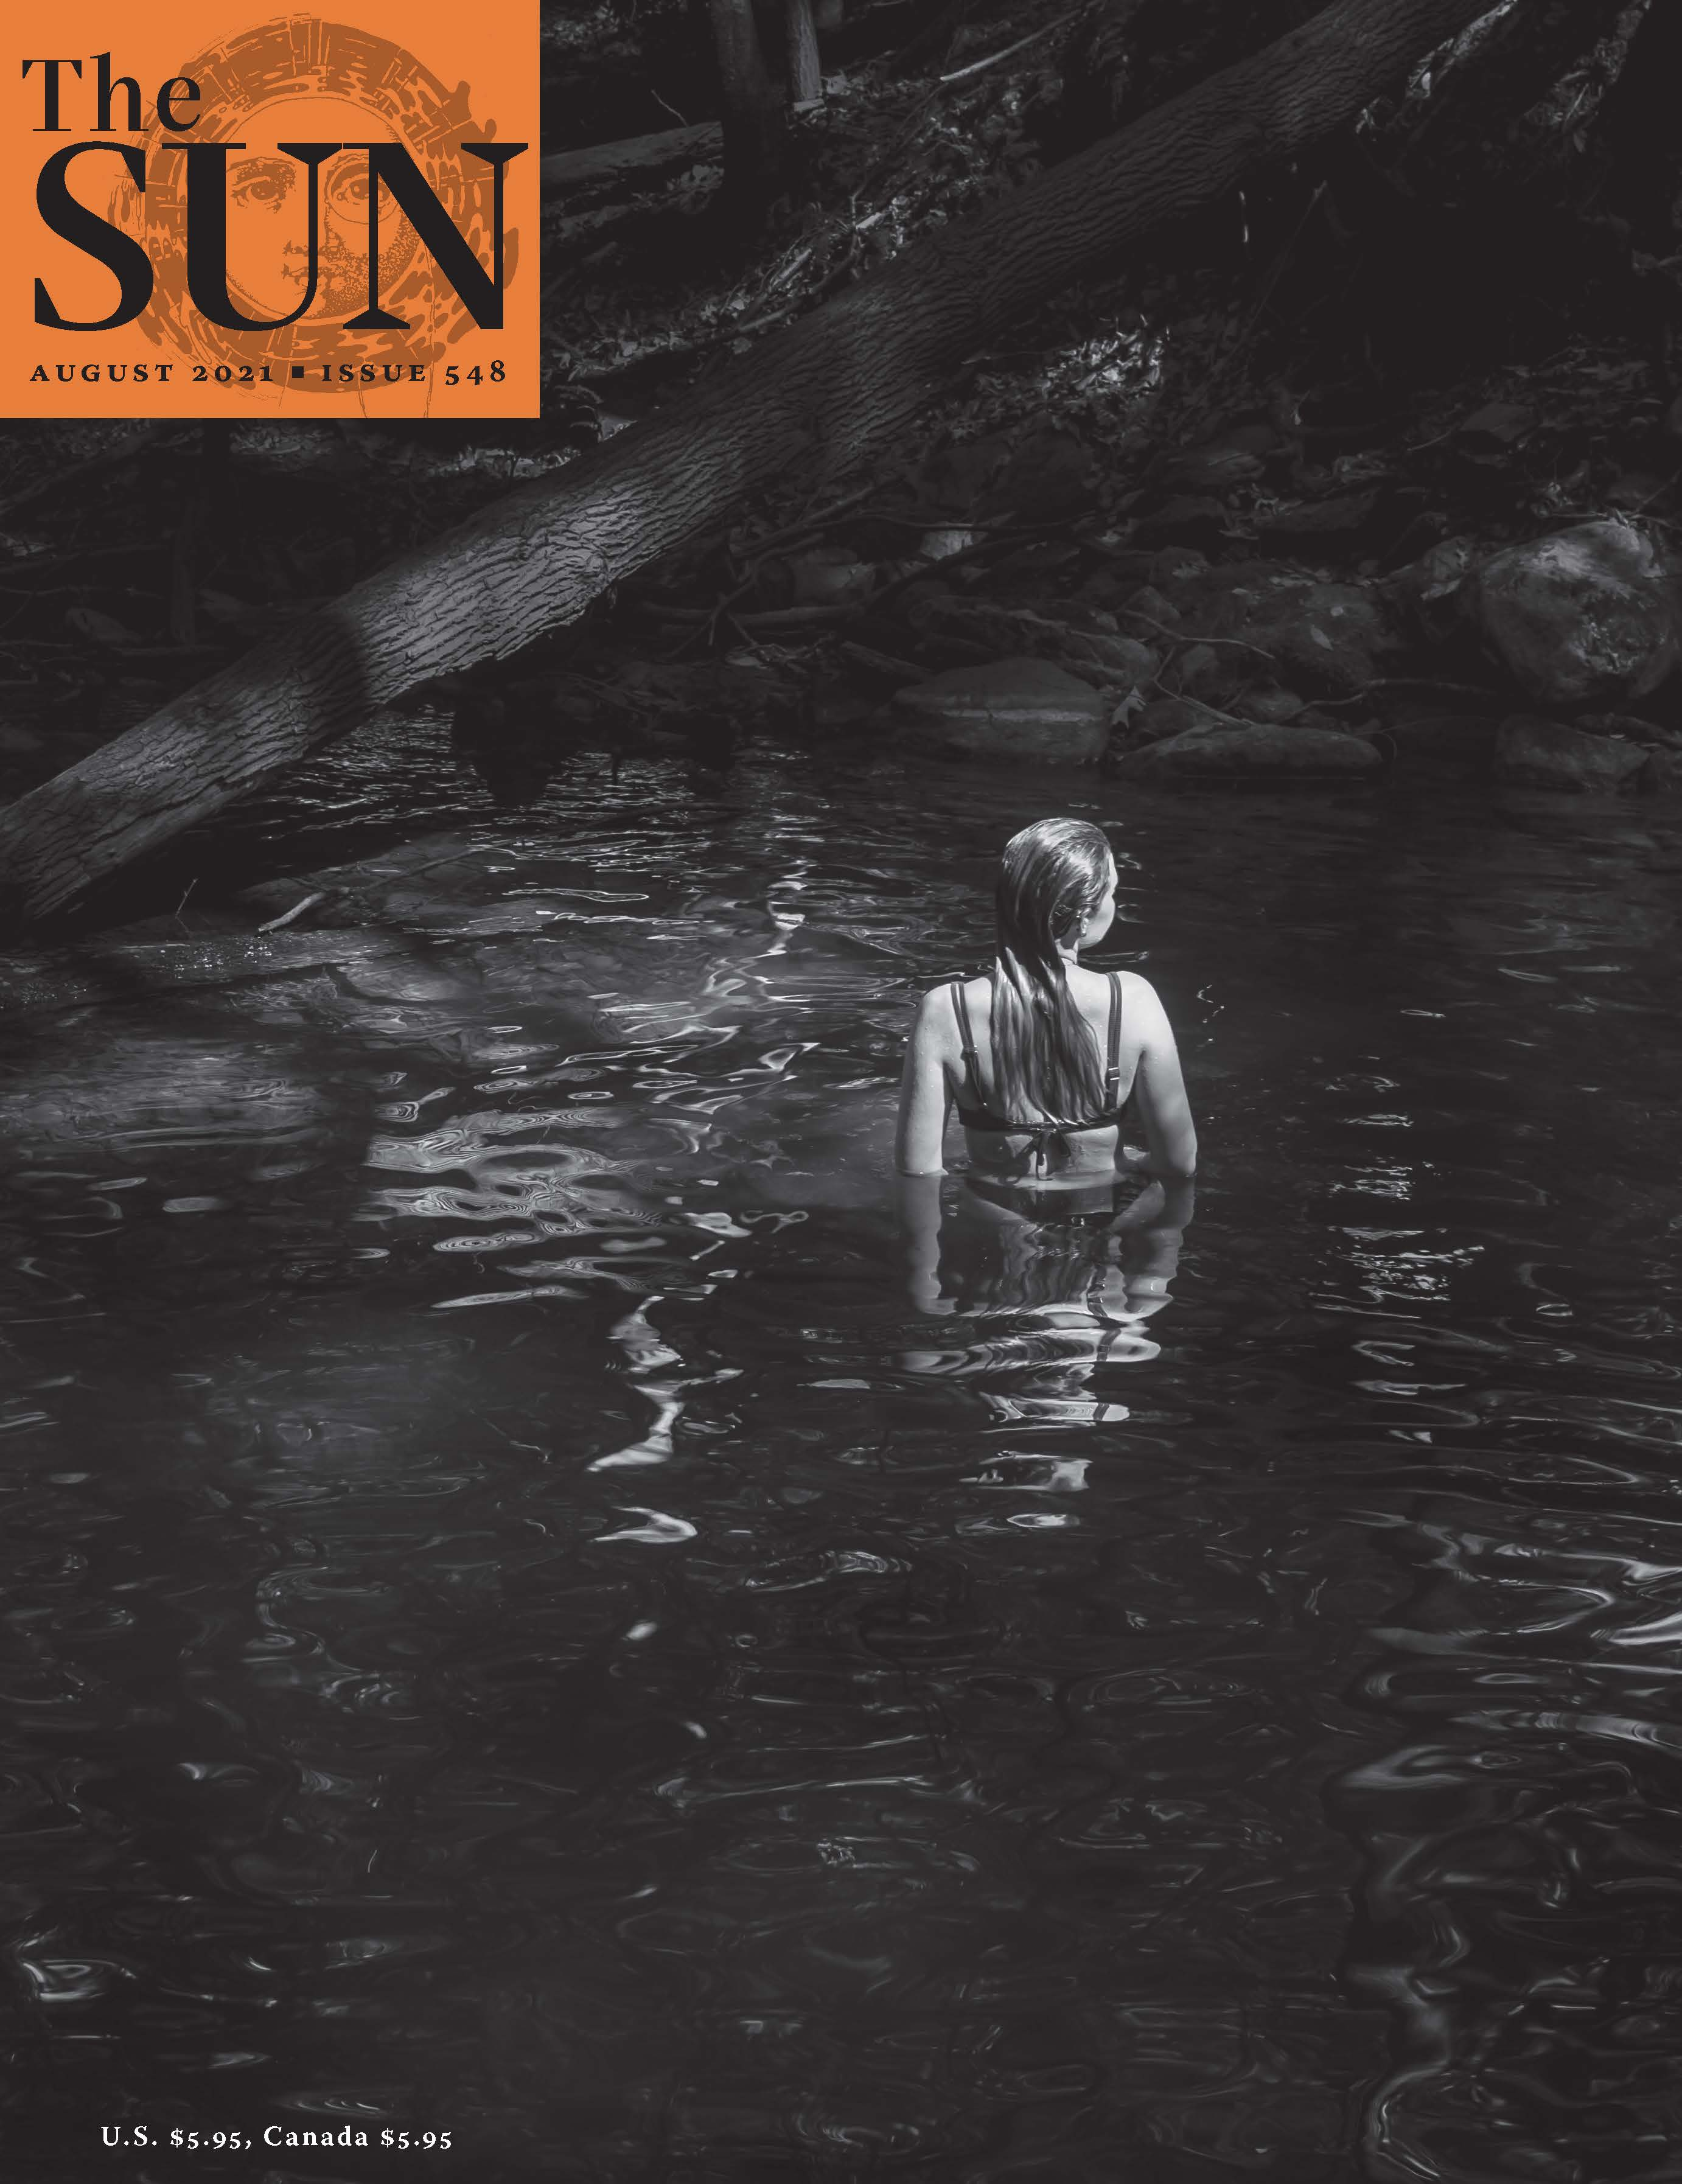 The photographer's daughter in a swimming hole at Slateford Creek Falls in Pennsylvania. The daughter has her back turned to the camera and she's looking slightly to the right.